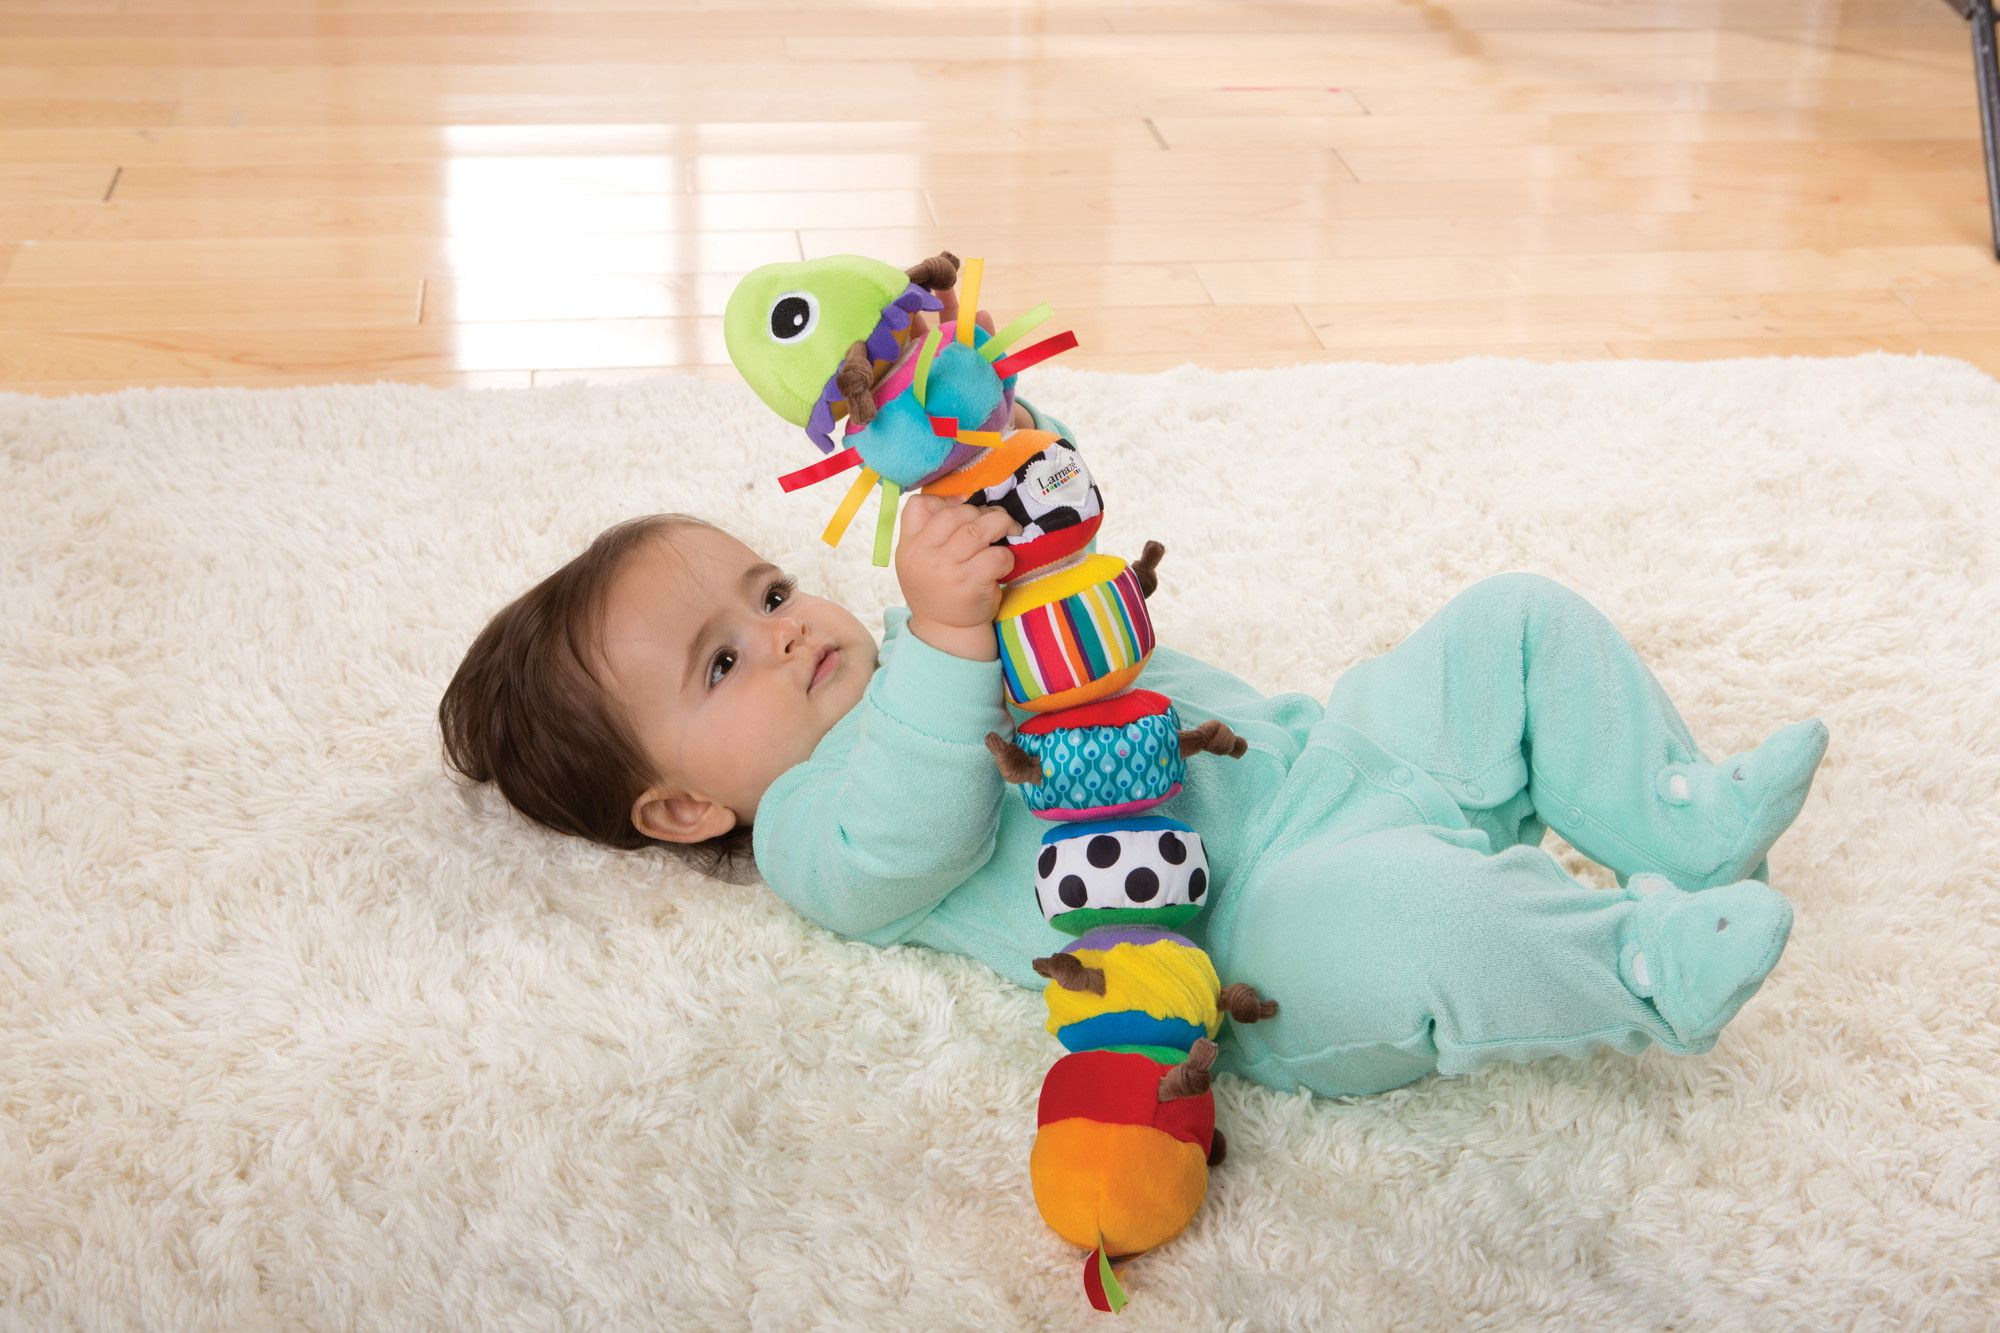 What Are The Best Baby Toys for Ages 0 to 6 Months